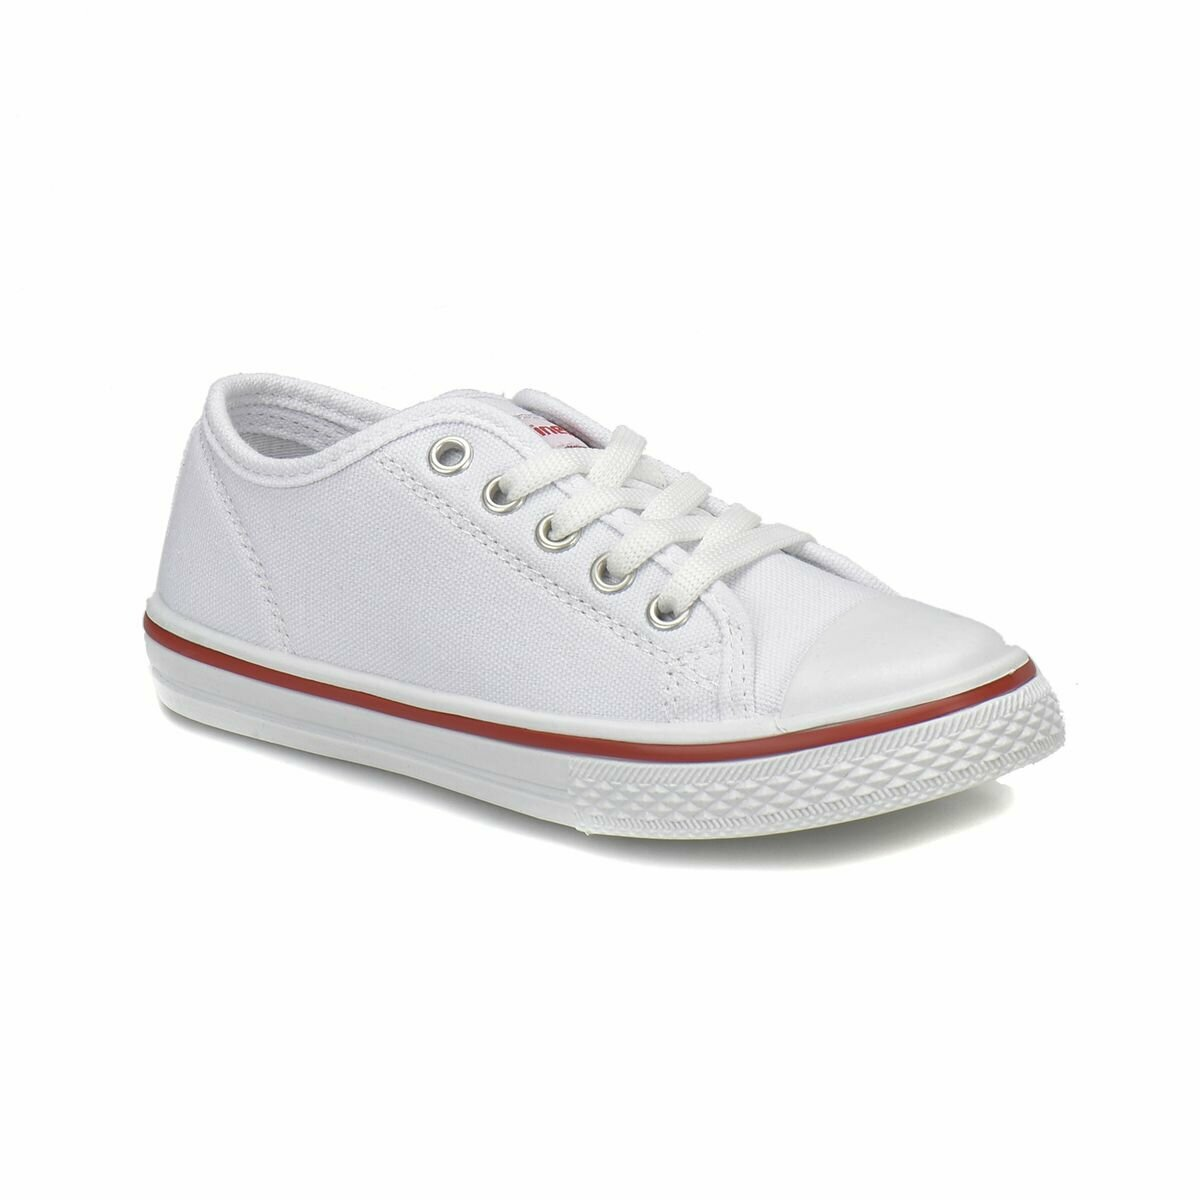 FLO BENY White Male Child Sneaker Shoes KINETIX